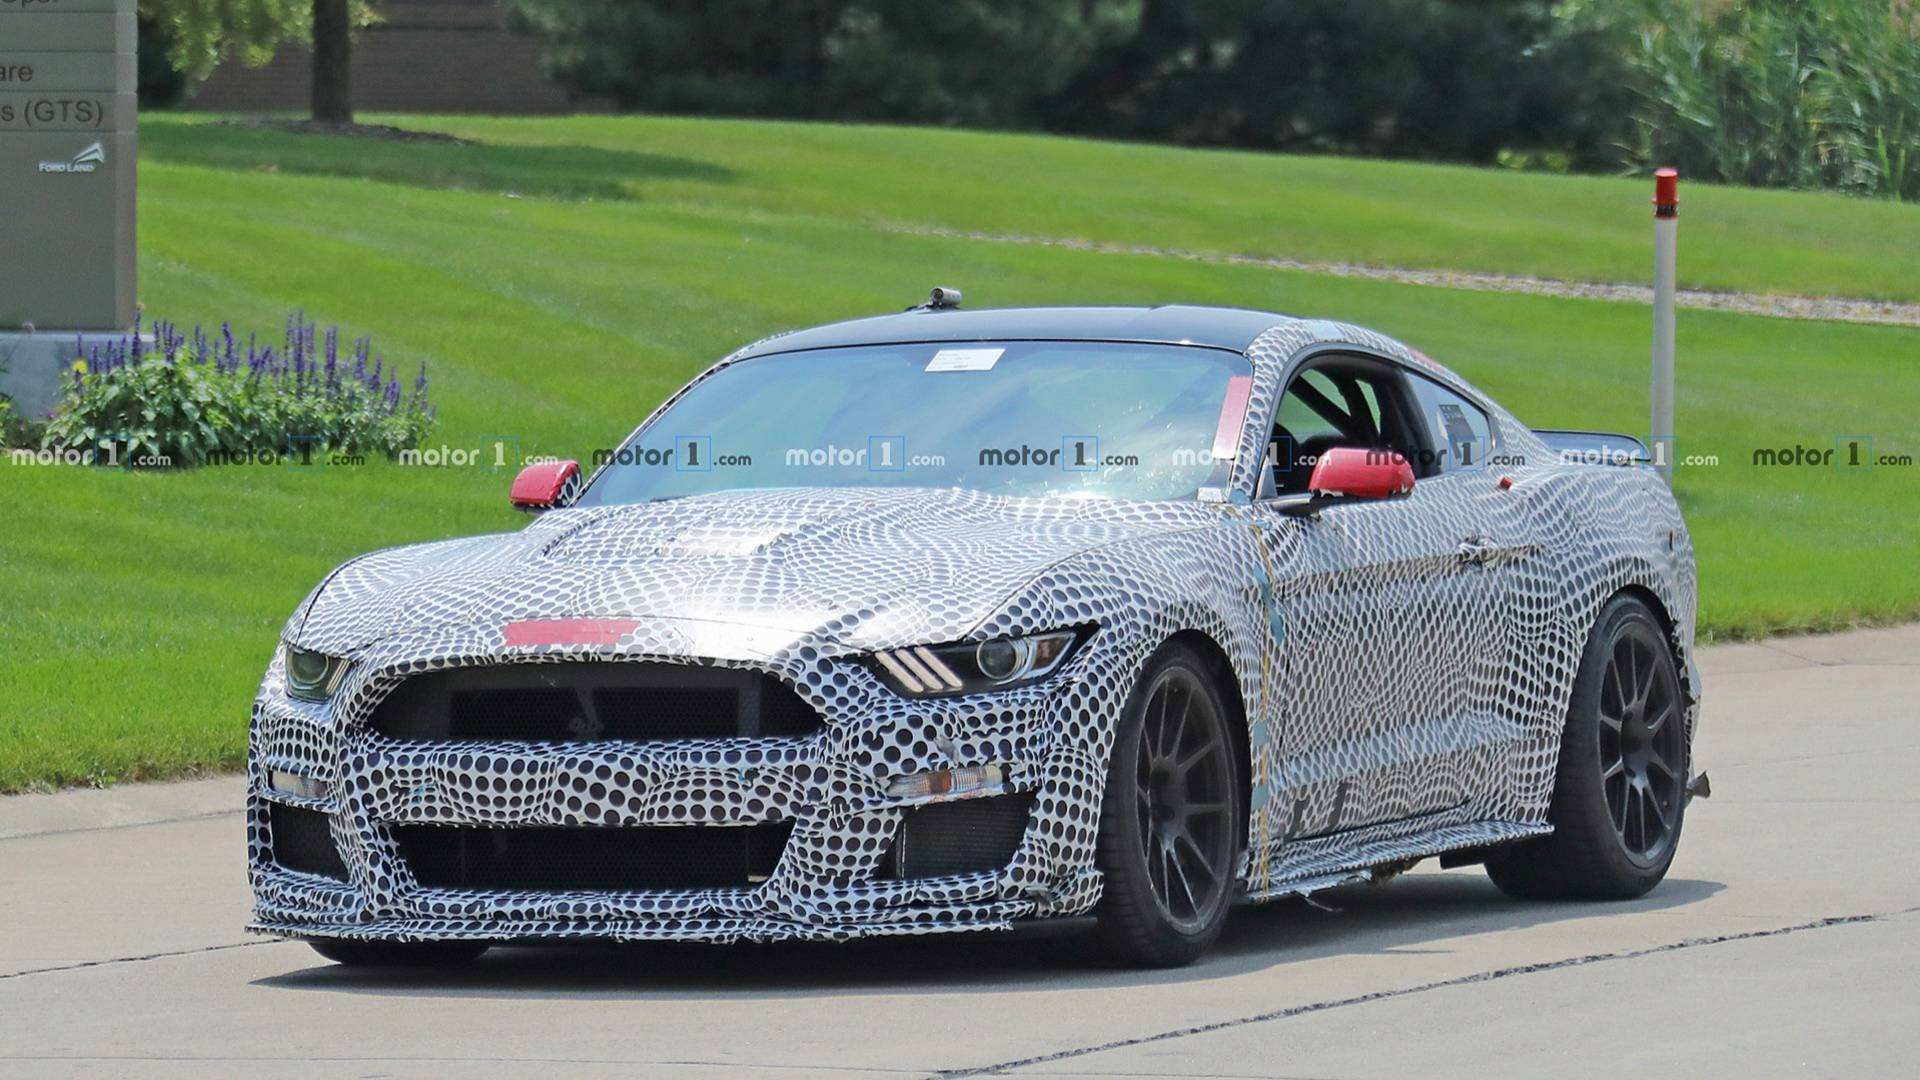 79 Concept of 2019 Ford Shelby Gt500 Performance and New Engine by 2019 Ford Shelby Gt500